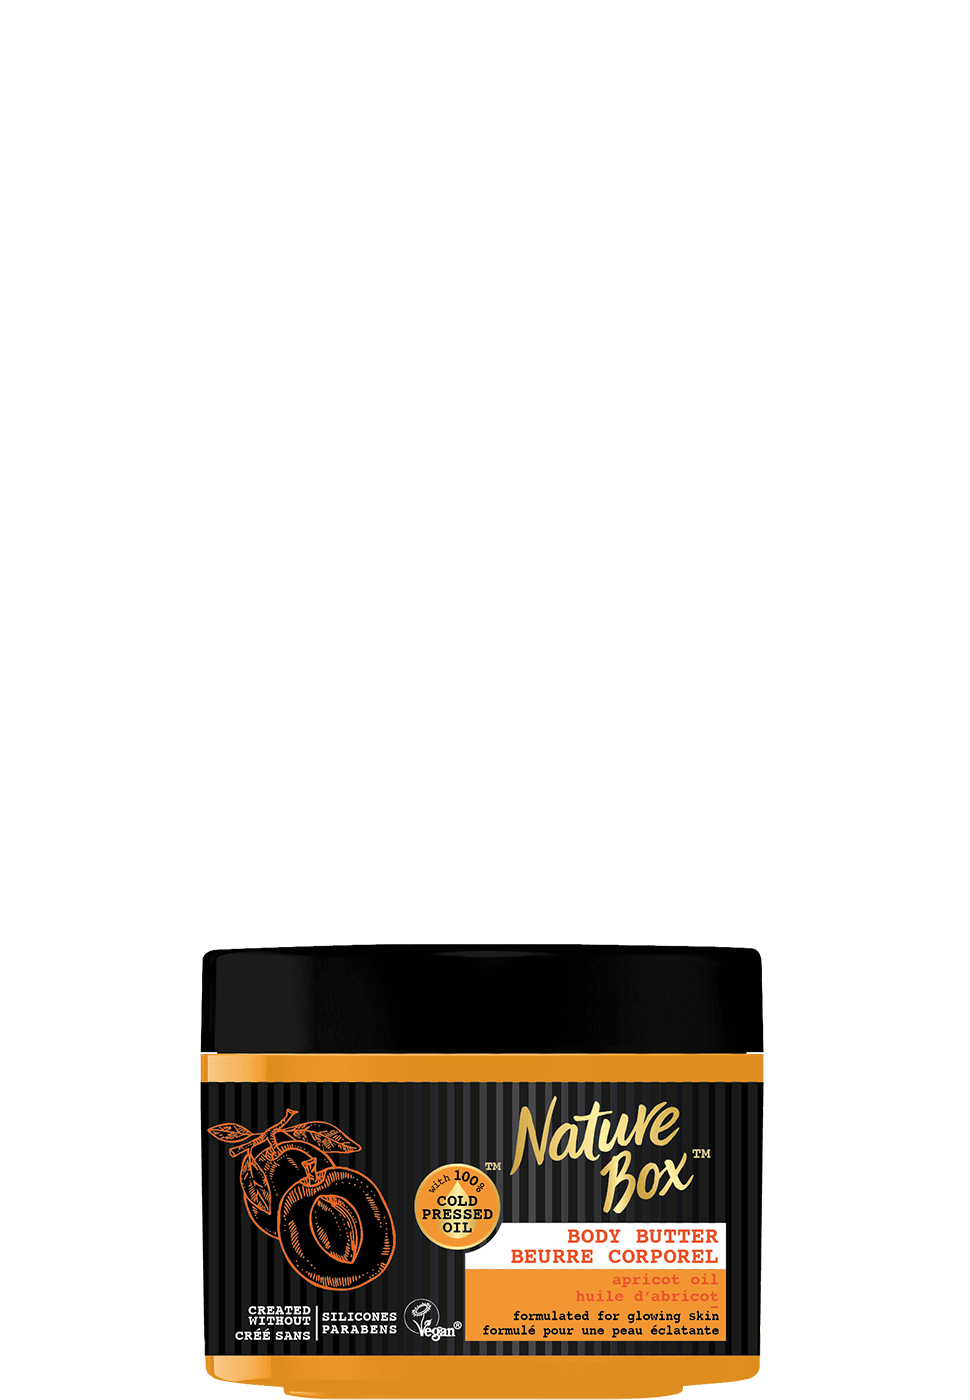 naturebox_us_apricot_body_butter_970x1400